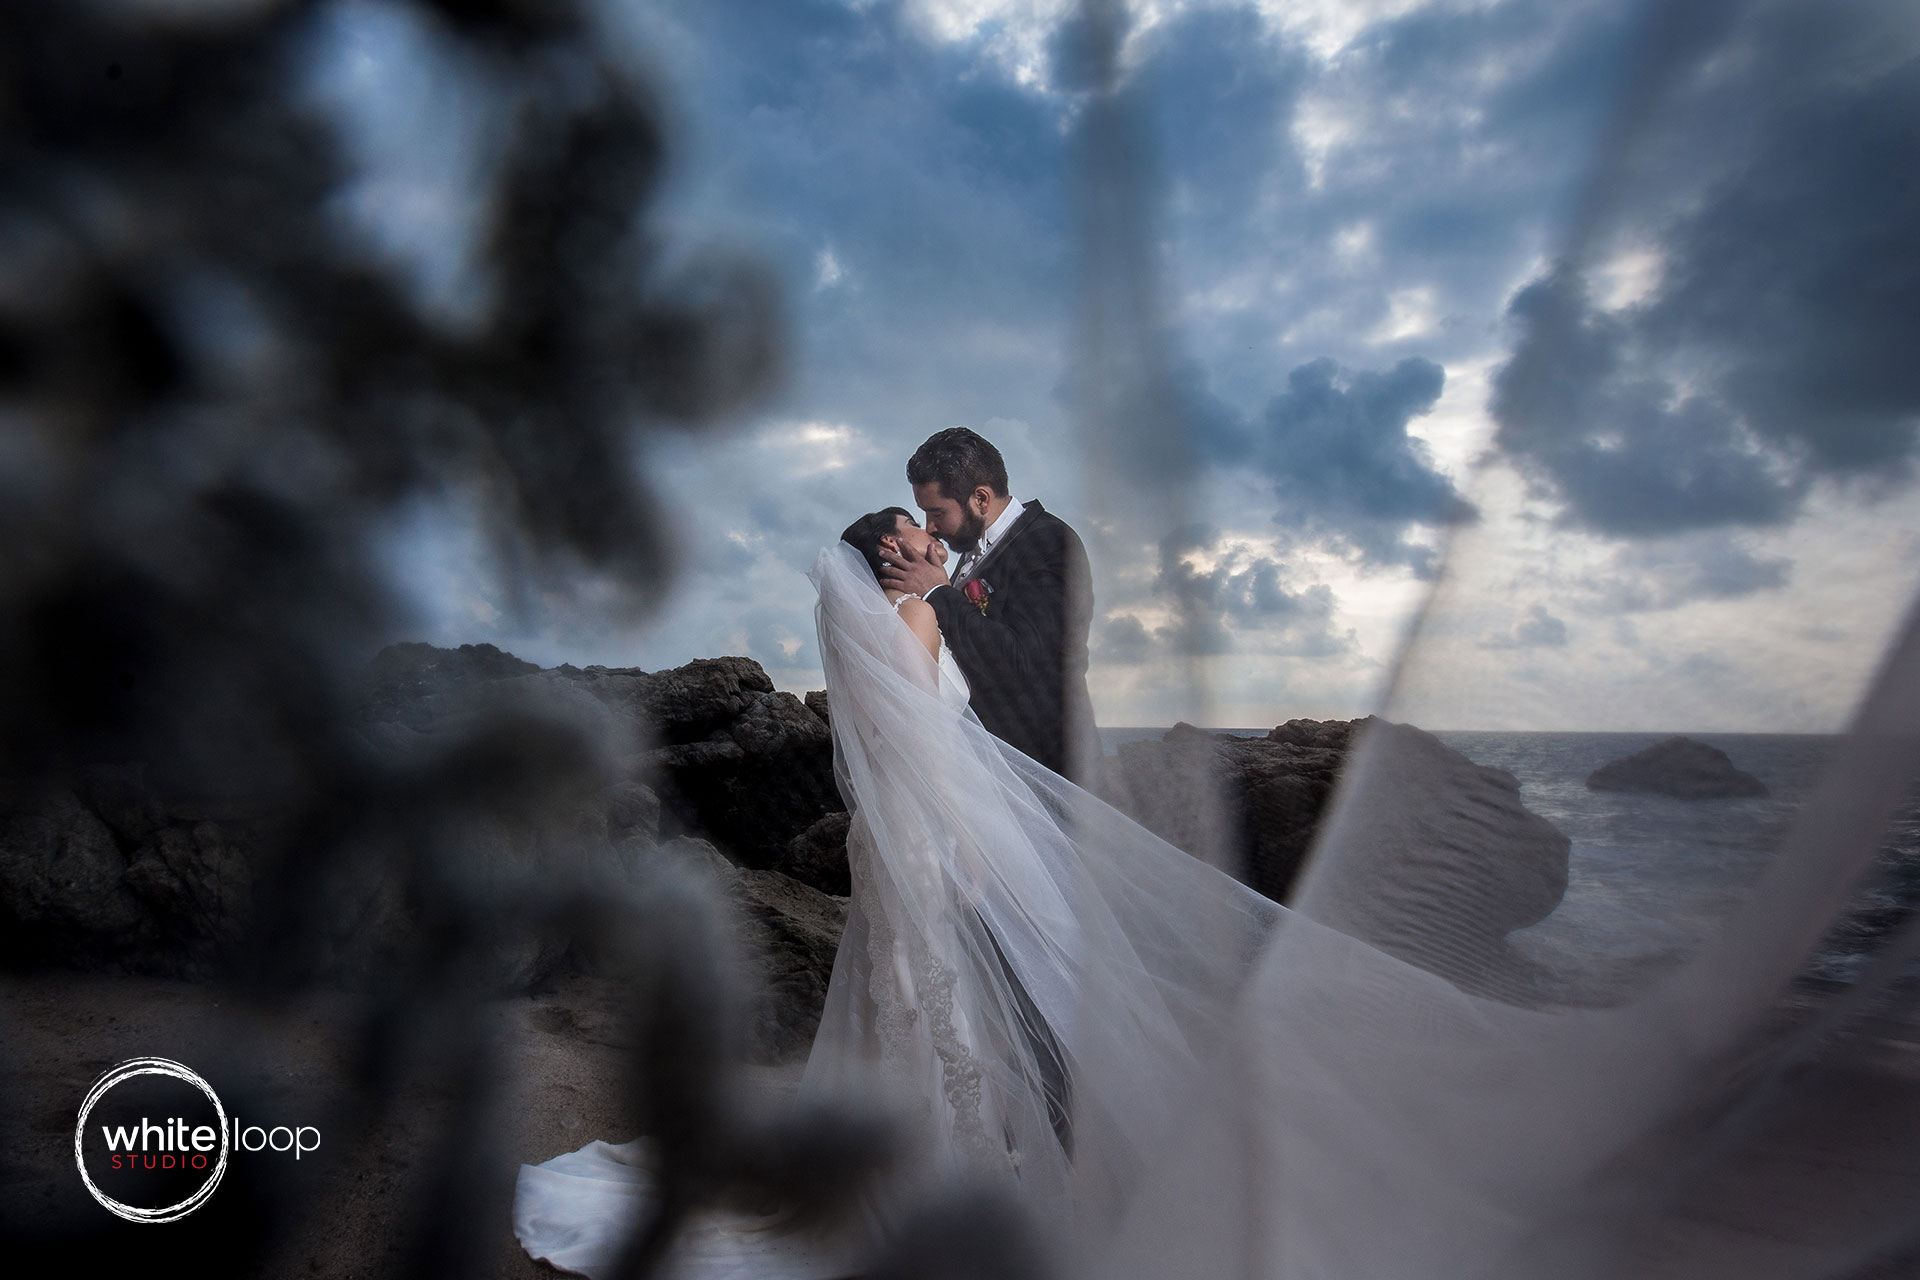 The bride and groom kissing on a rocky mexican landscape overlooking the sea on a cloudy day.